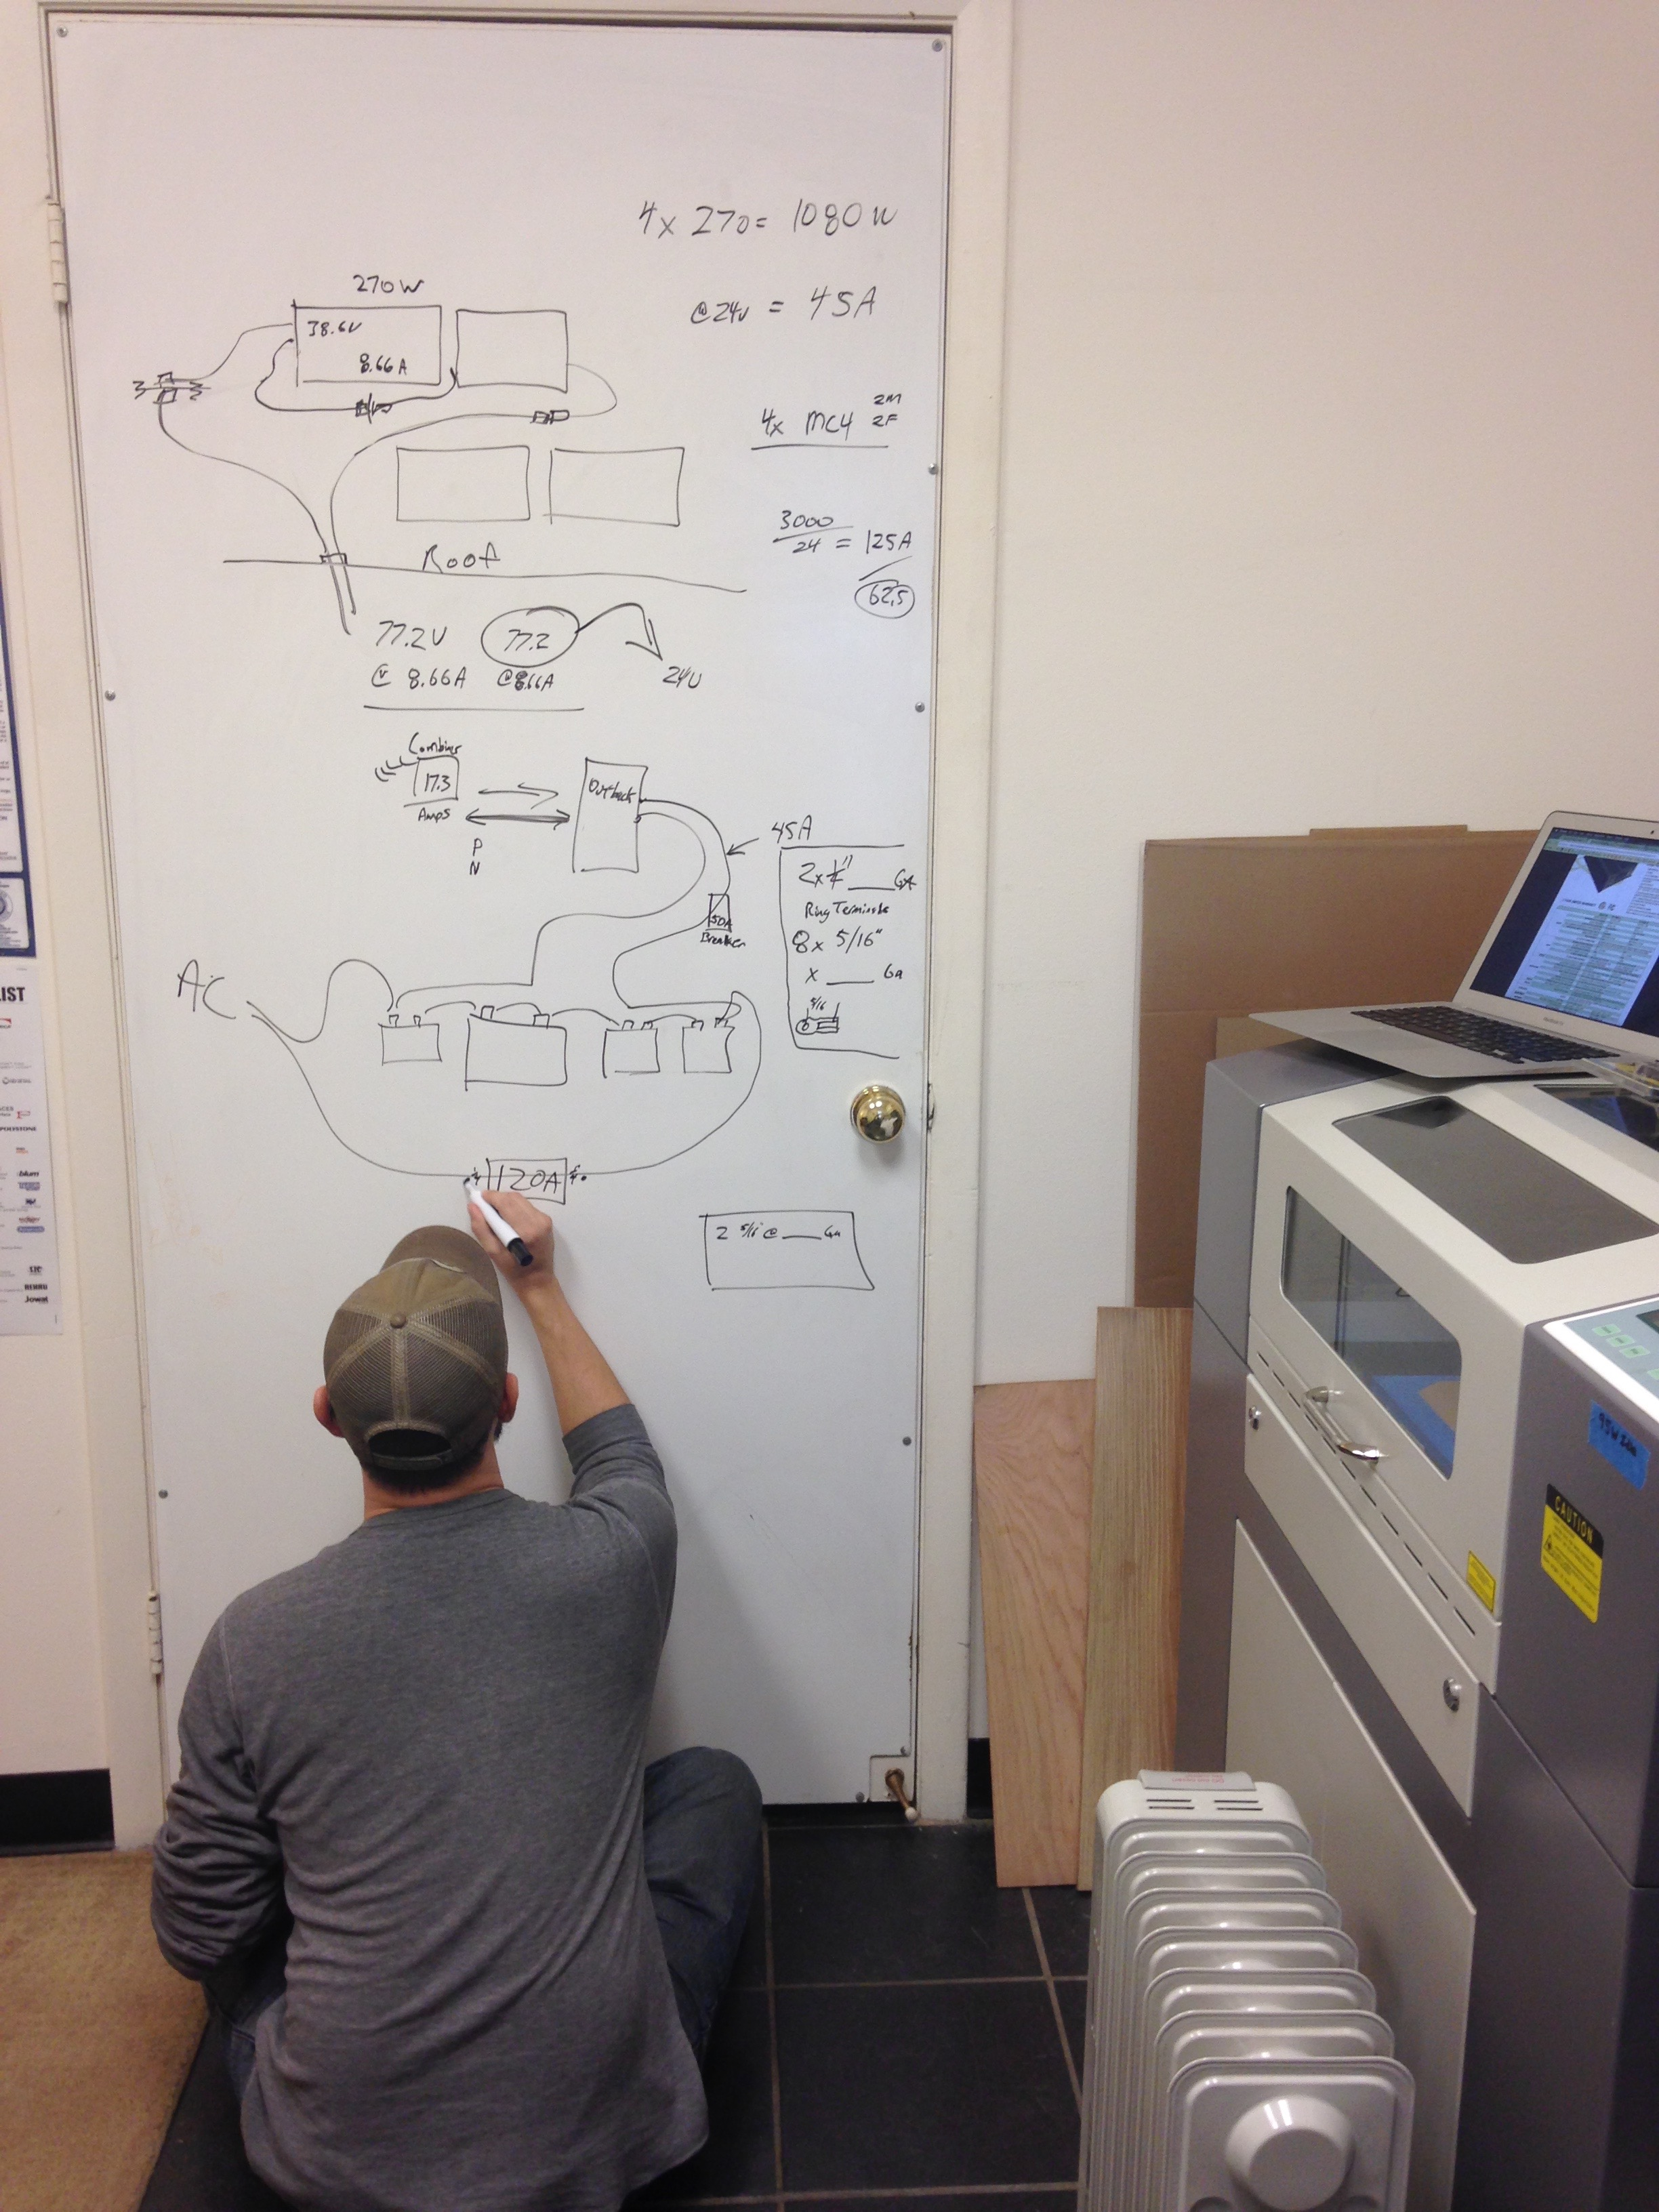 Mapping out the circuitry to plan wire and connector orders.